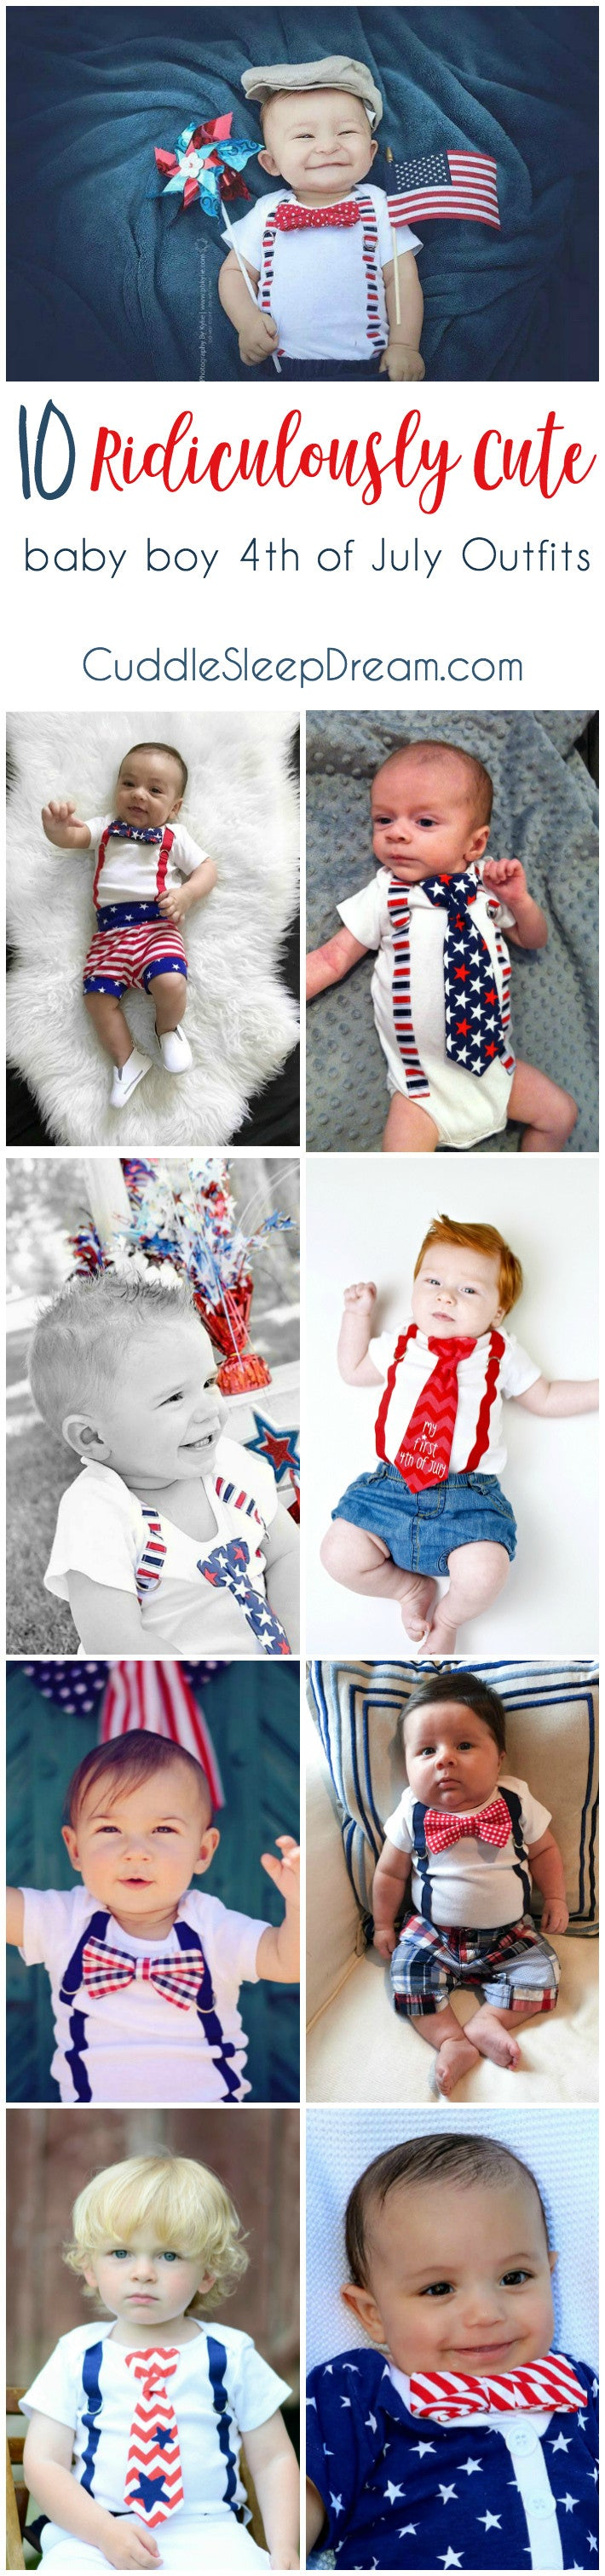 10 Ridiculously Cute Baby Boy 4th Of July Outfits And Babies